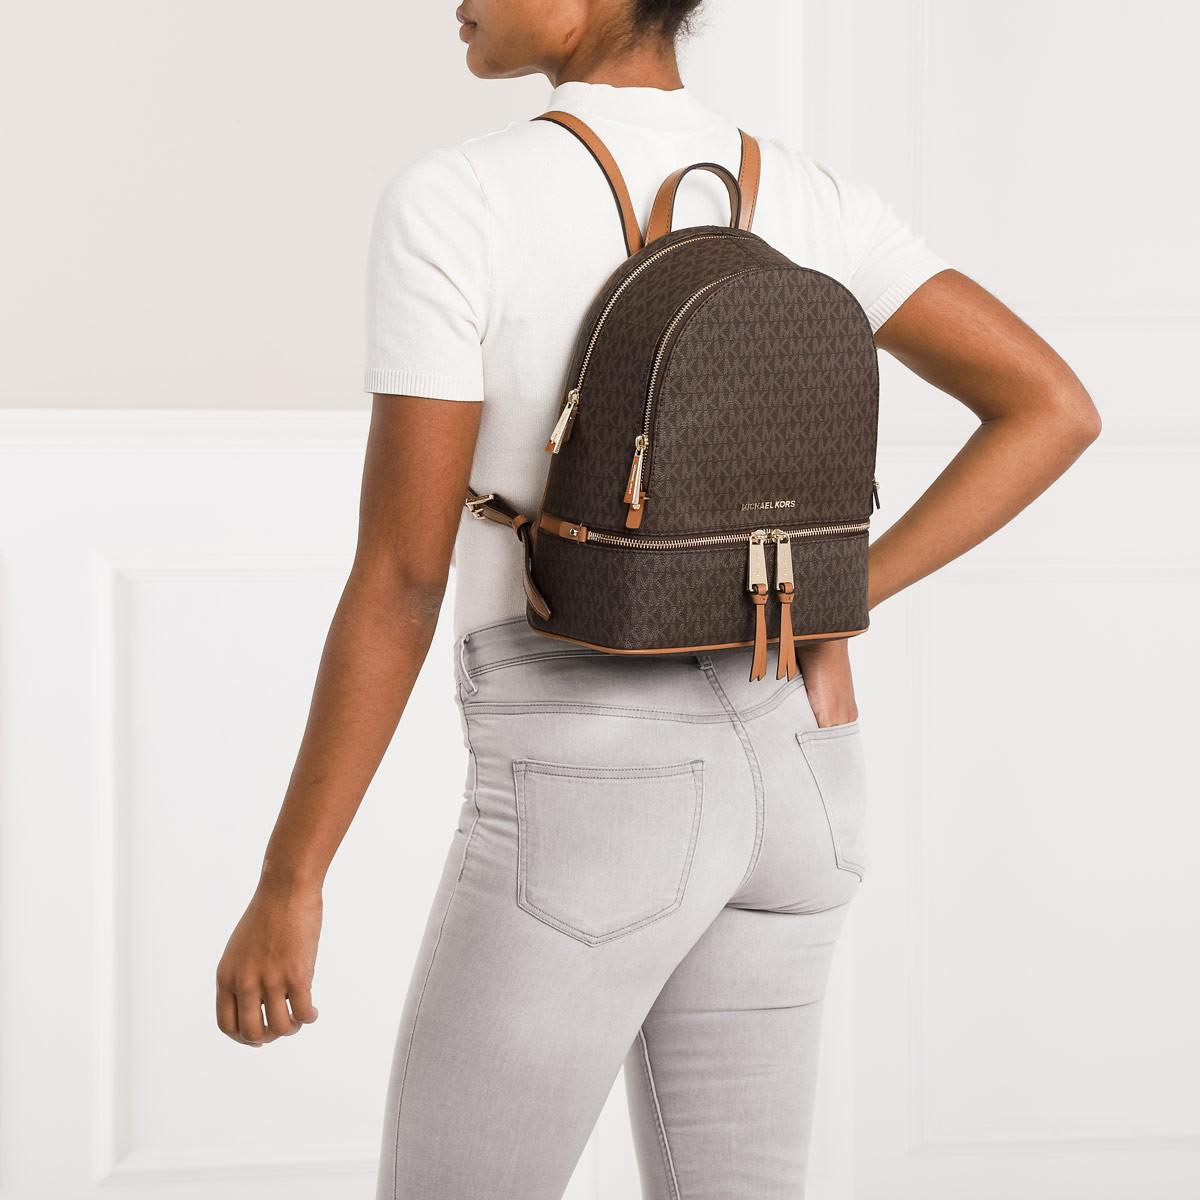 6cef5c897721 Michael Kors - Rhea Zip Md Backpack Brown - Lyst. View fullscreen